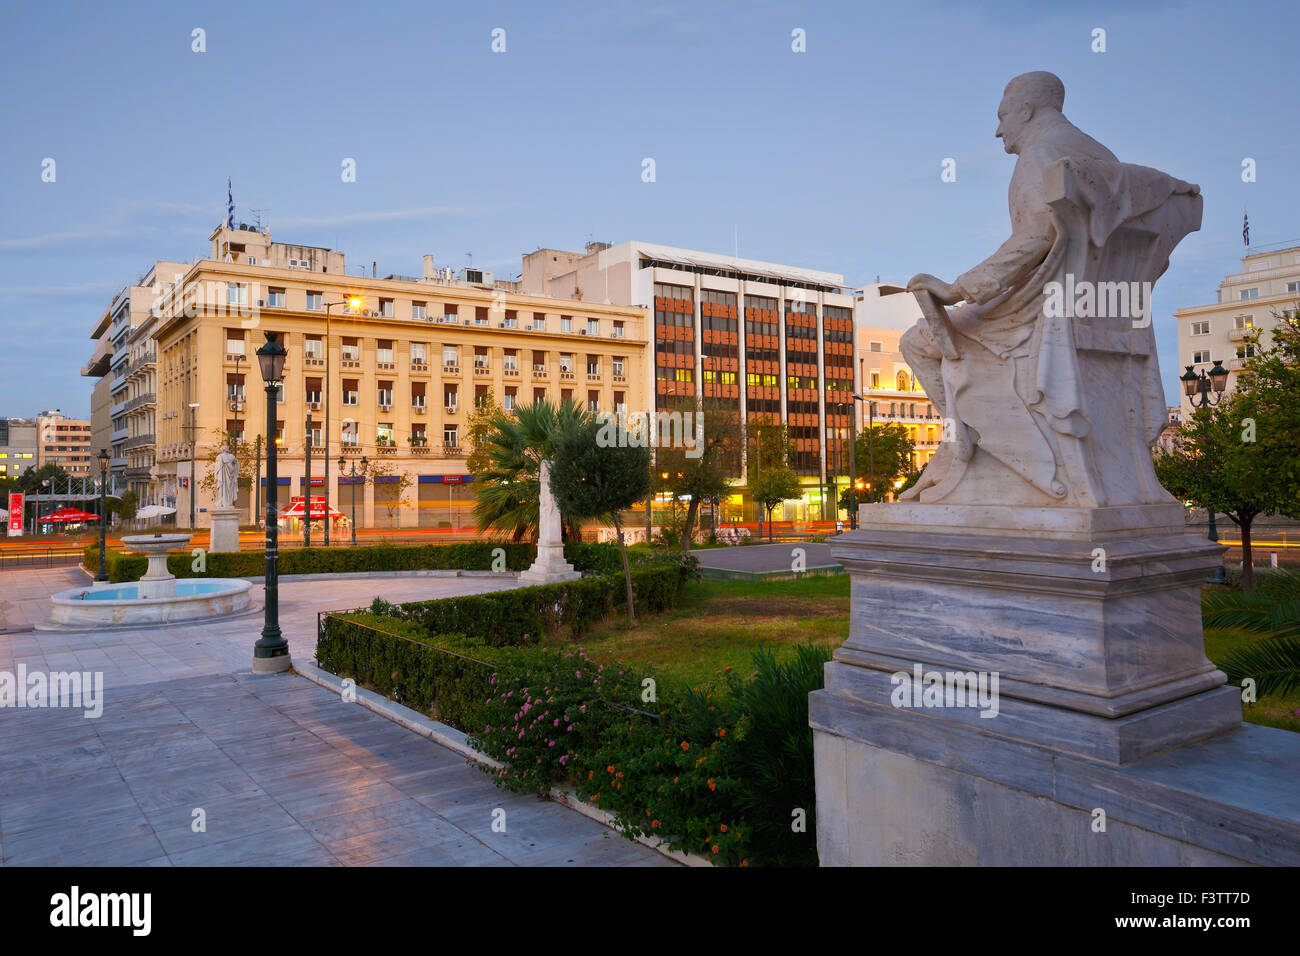 Square in front of the National & Kapodistrian University of Athens  in Panepistimio in the morning - Stock Image